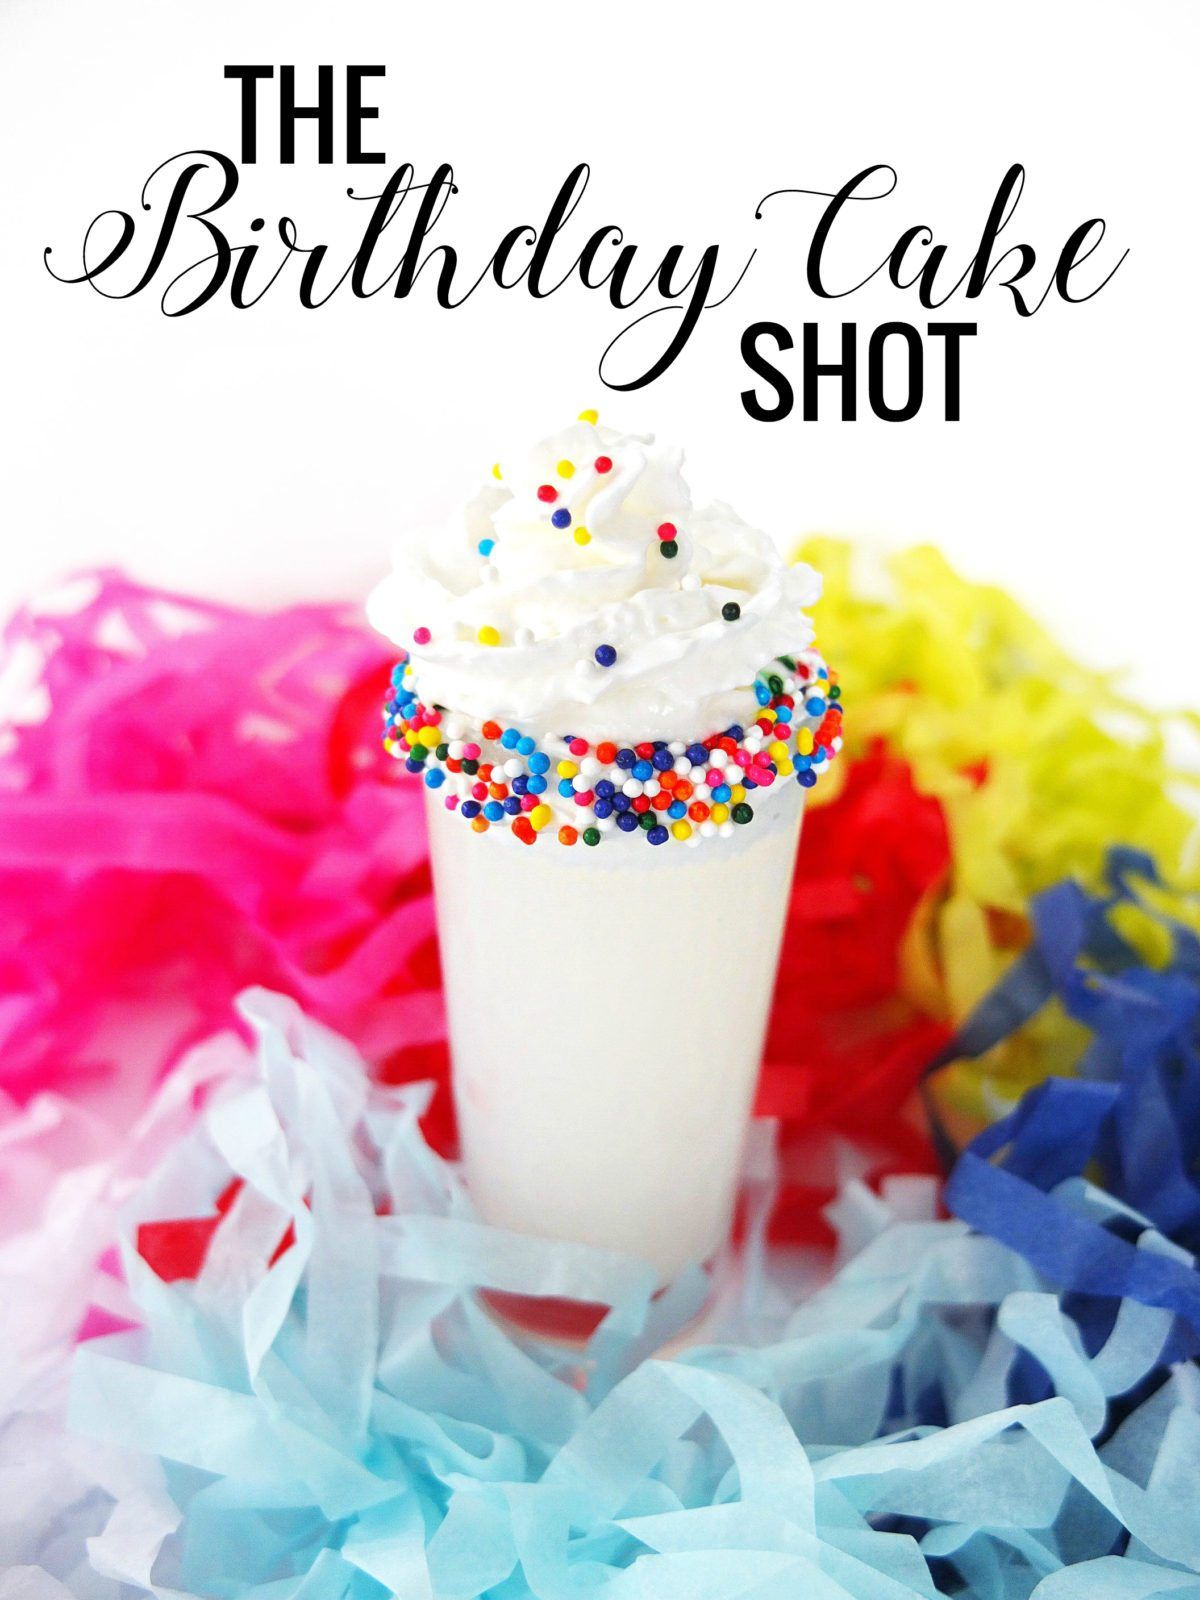 Birthday Cake Shot Recipe Easy shot recipes Birthday cake shots